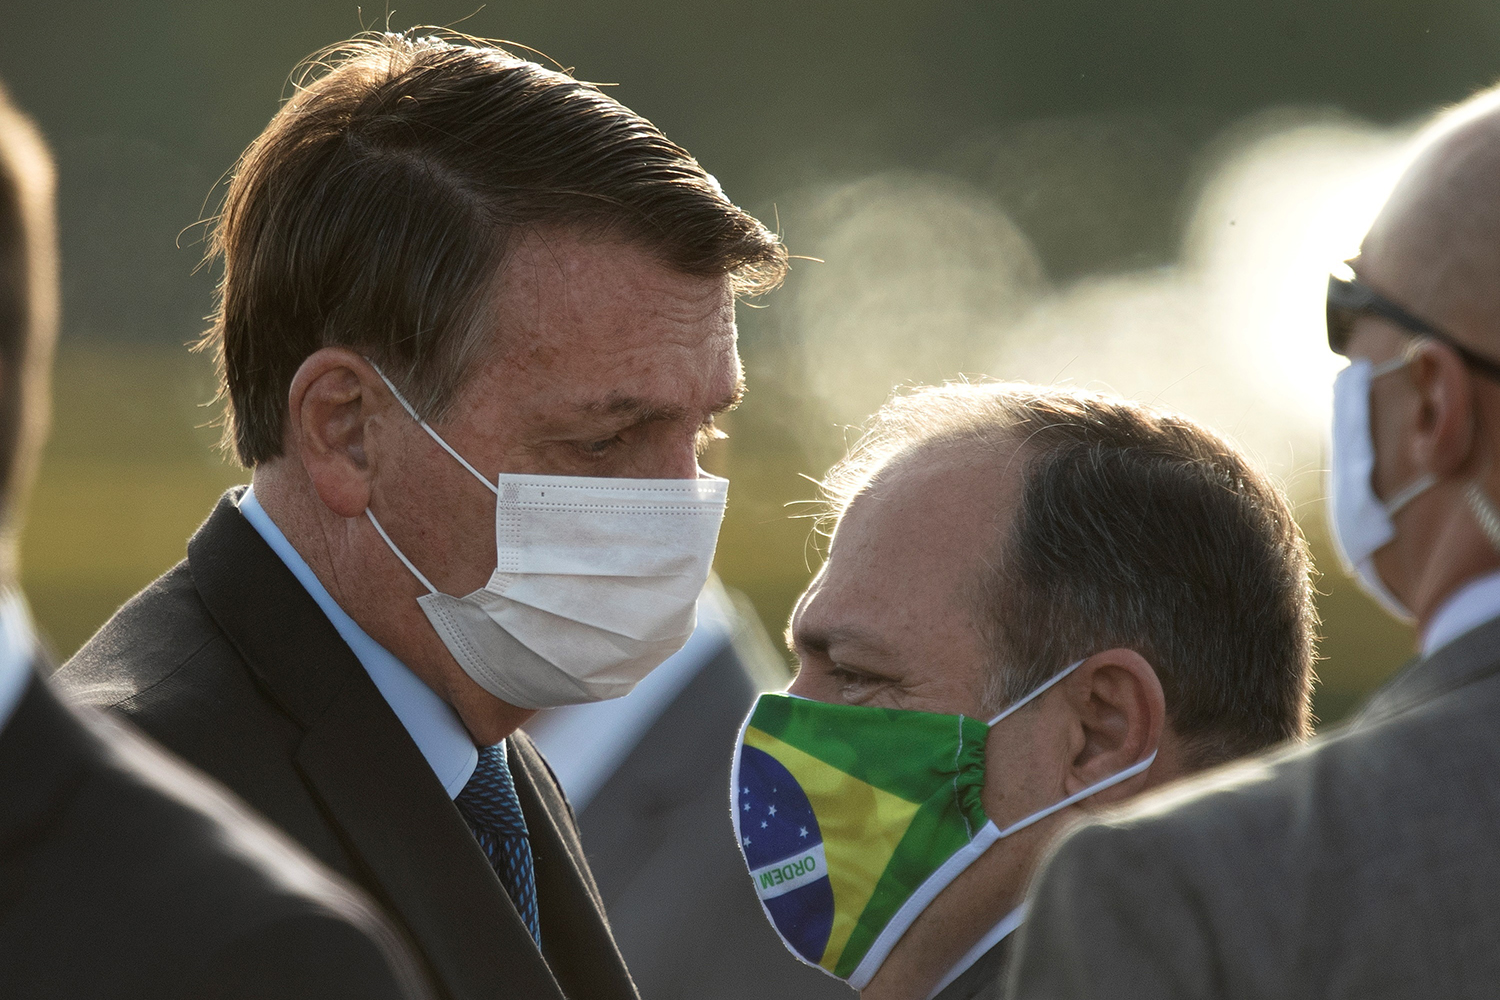 The President of Brazil Jair Bolsonaro (L) speaks with acting Minister of Health Eduardo Pazuello during the raising of the national flag, in the Palacio do Alvorada, in Brasilia, Brazil, 09 June 2020. The Brazilian Supreme Court determined that the Government must re-disclose the daily data of the pandemic of the new coronavirus in a consolidated manner, as it had been doing until last Thursday, before adopting a new and controversial methodology, and gave a period of 48 hours to explain that decision. EFE/ Joedson Alves